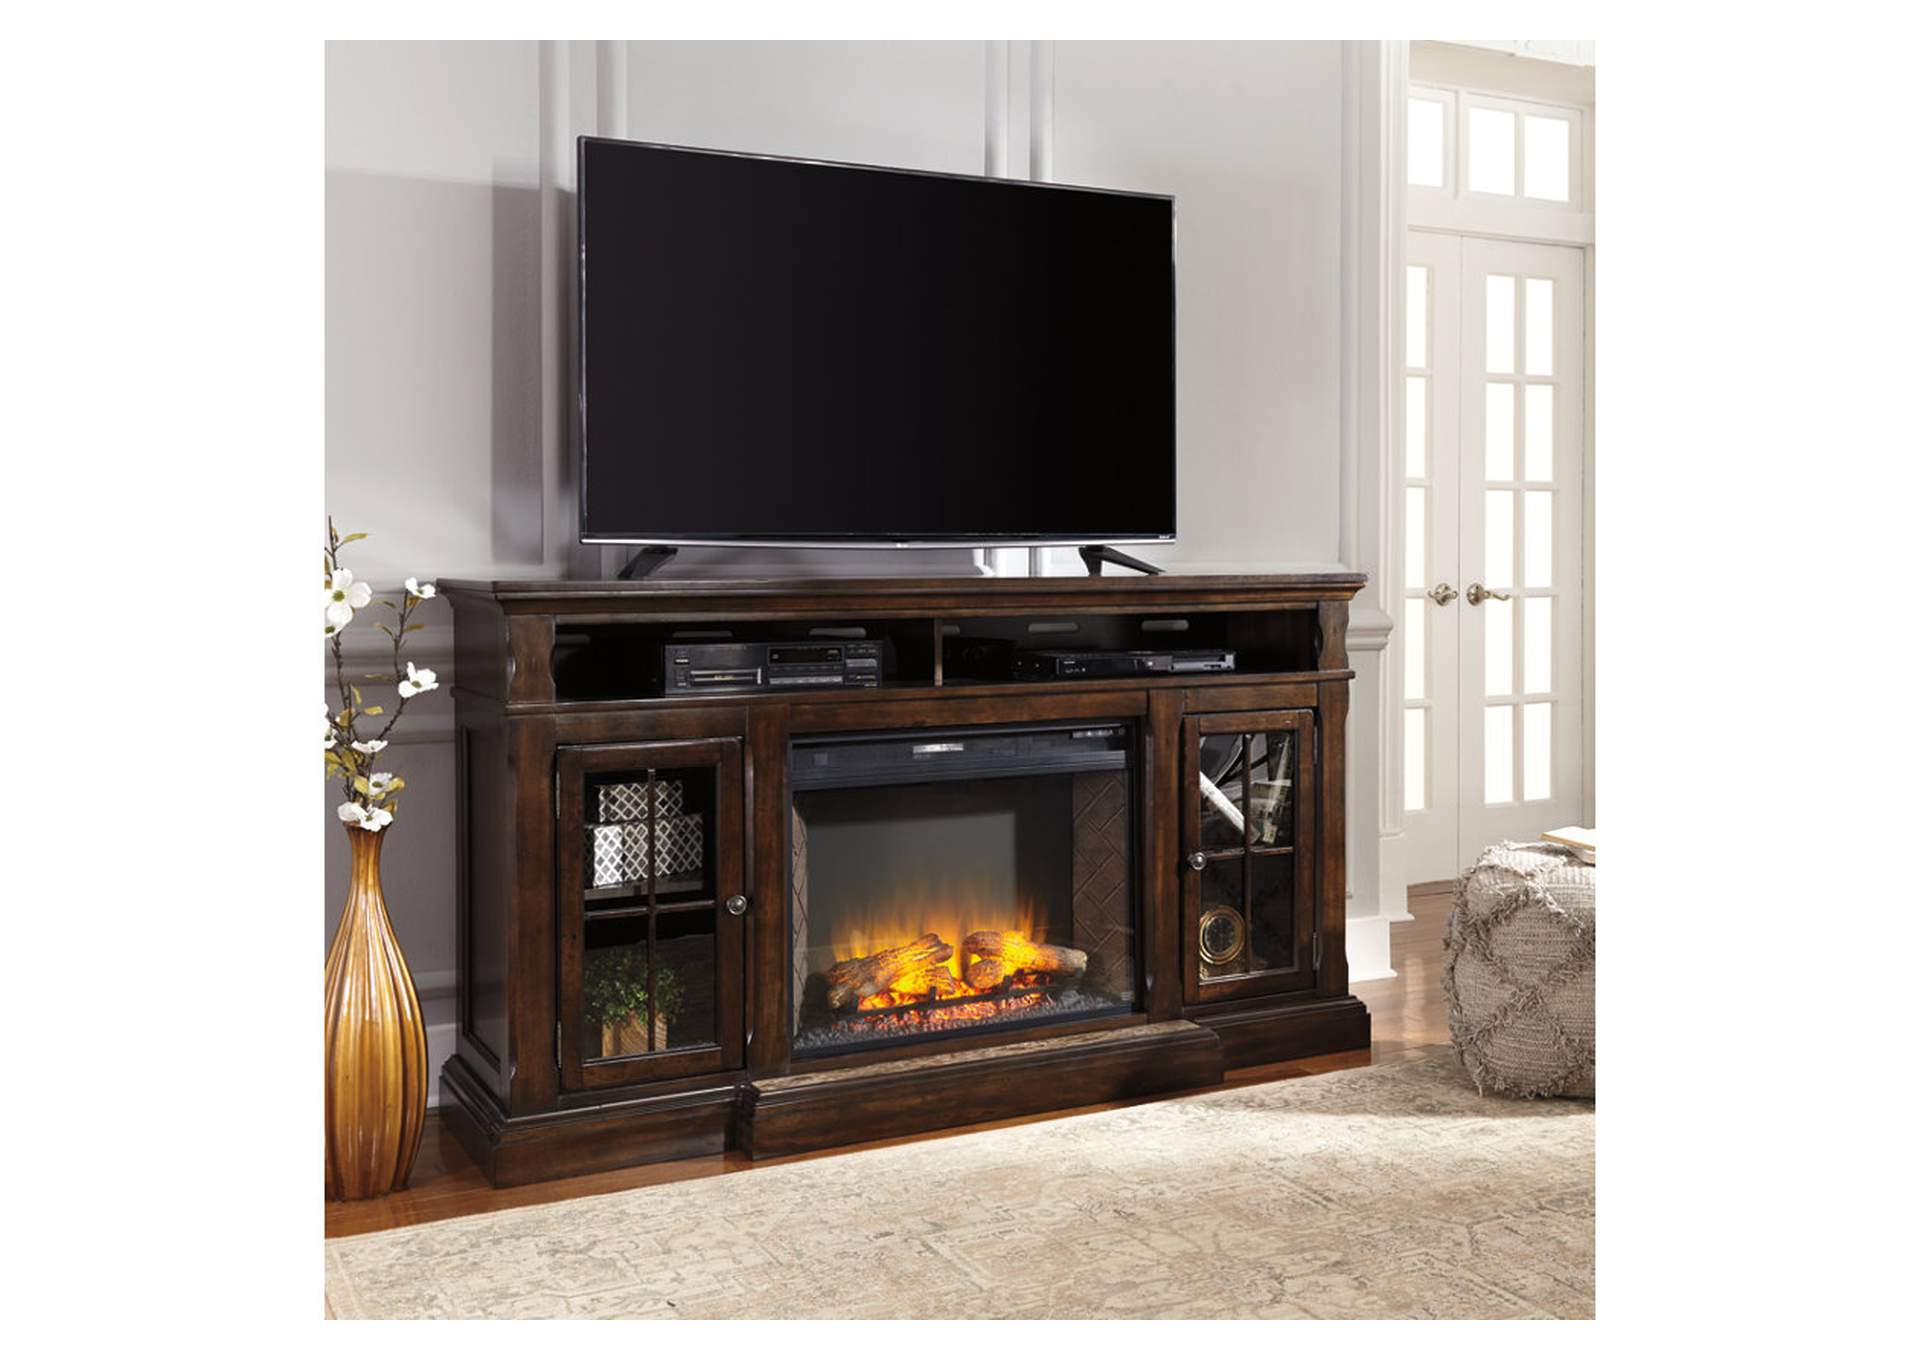 Roddinton XL TV Stand w/ Fireplace,Signature Design By Ashley